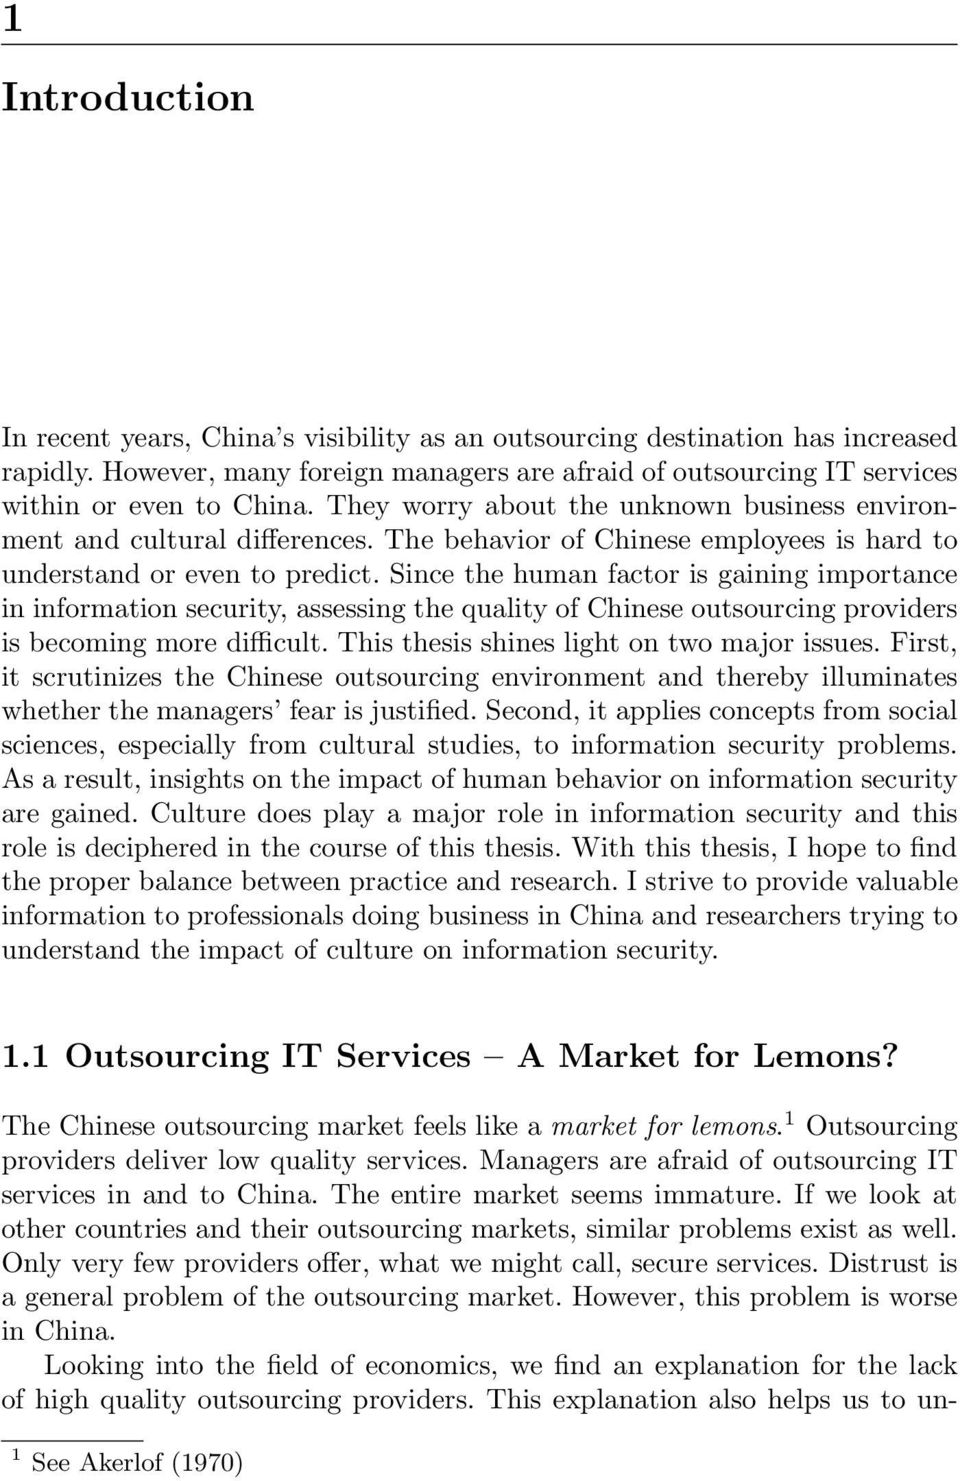 Since the human factor is gaining importance in information security, assessing the quality of Chinese outsourcing providers is becoming more difficult. This thesis shines light on two major issues.